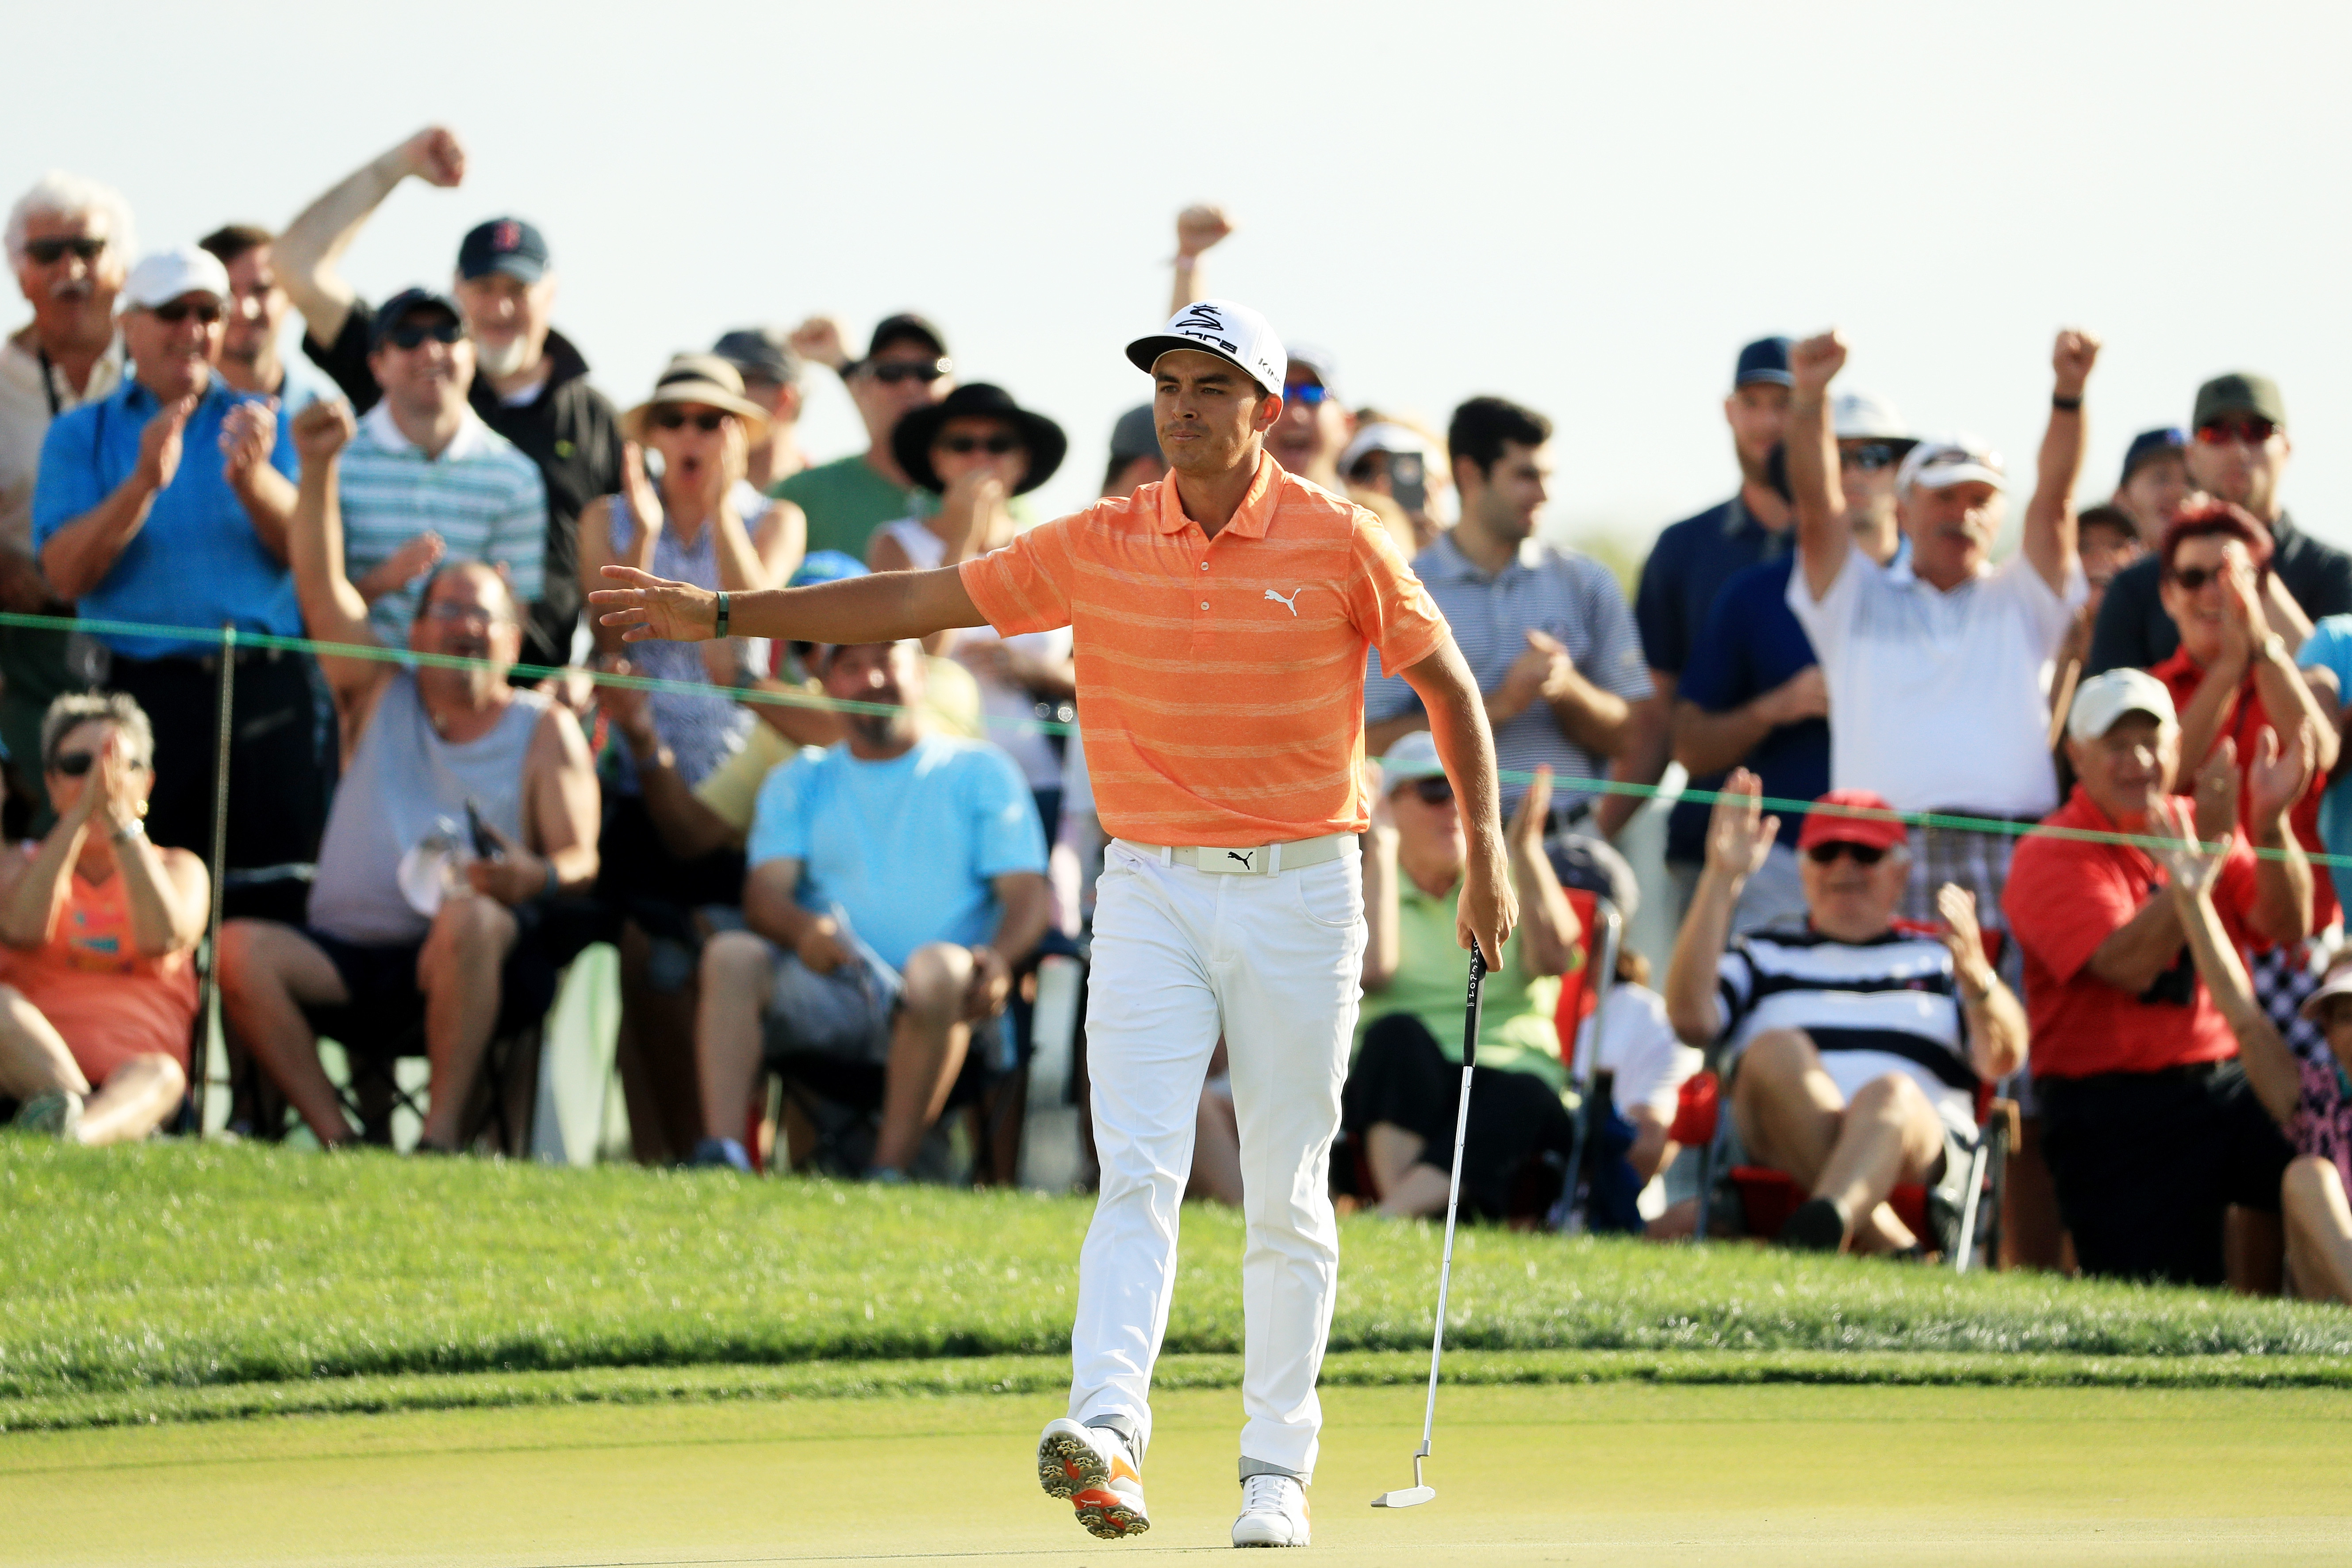 Rickie Fowler made some big back-nine birdies to keep the momentum and win The Honda Classic on Sunday.